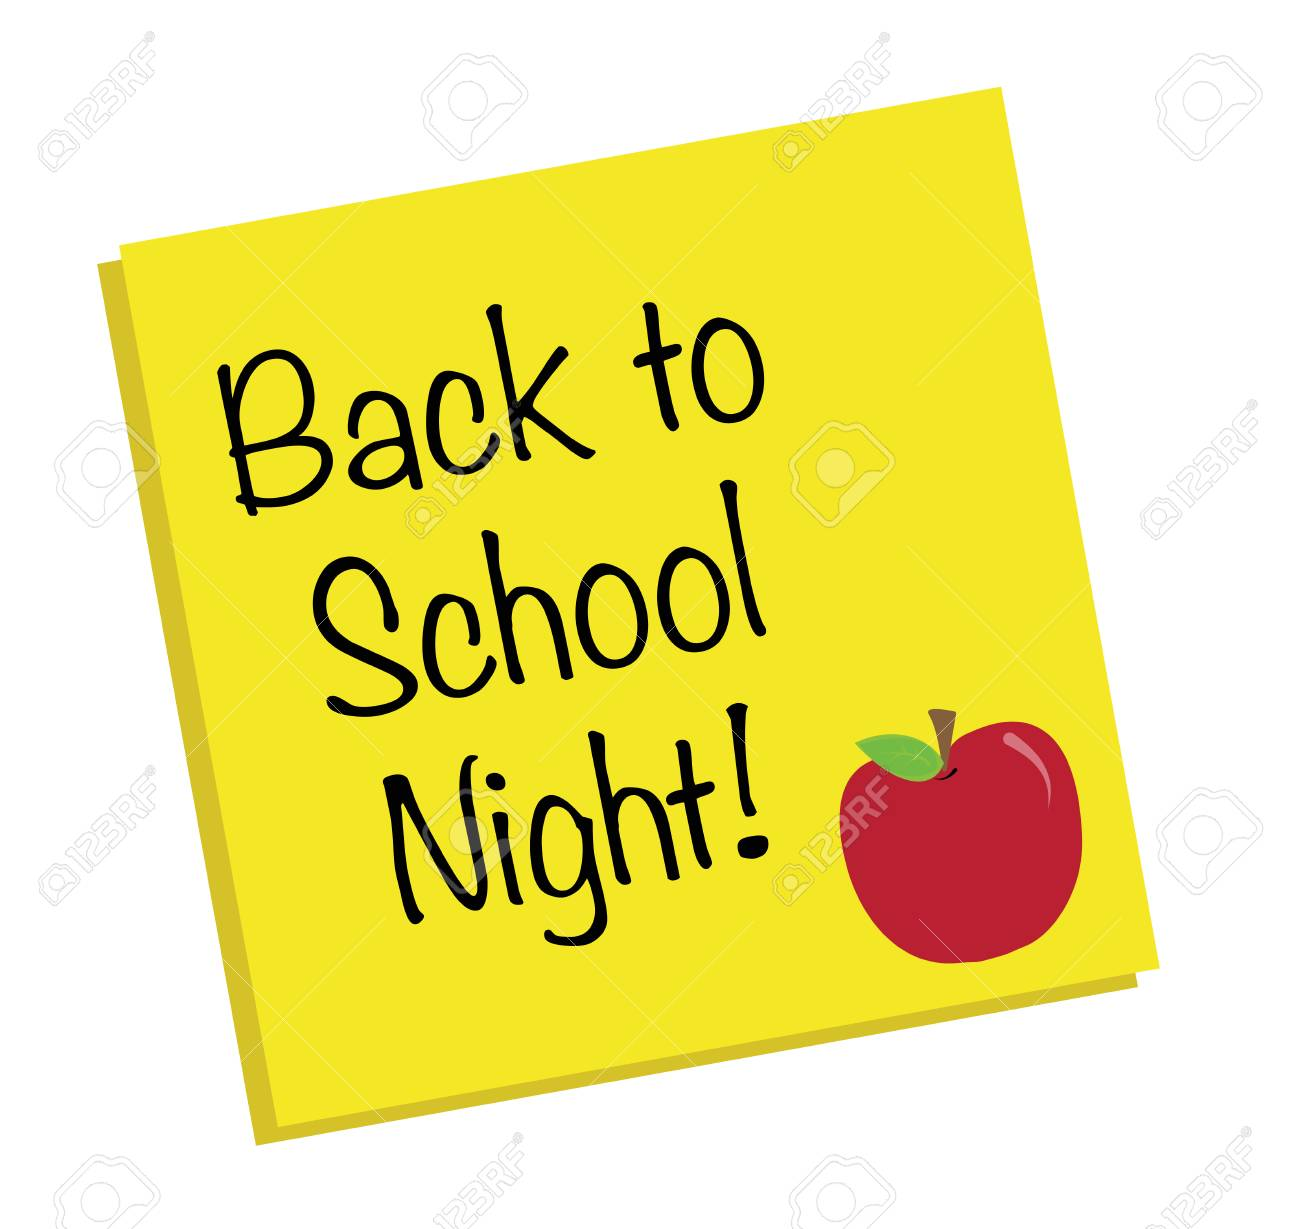 back to school night royalty free cliparts, vectors, and stock